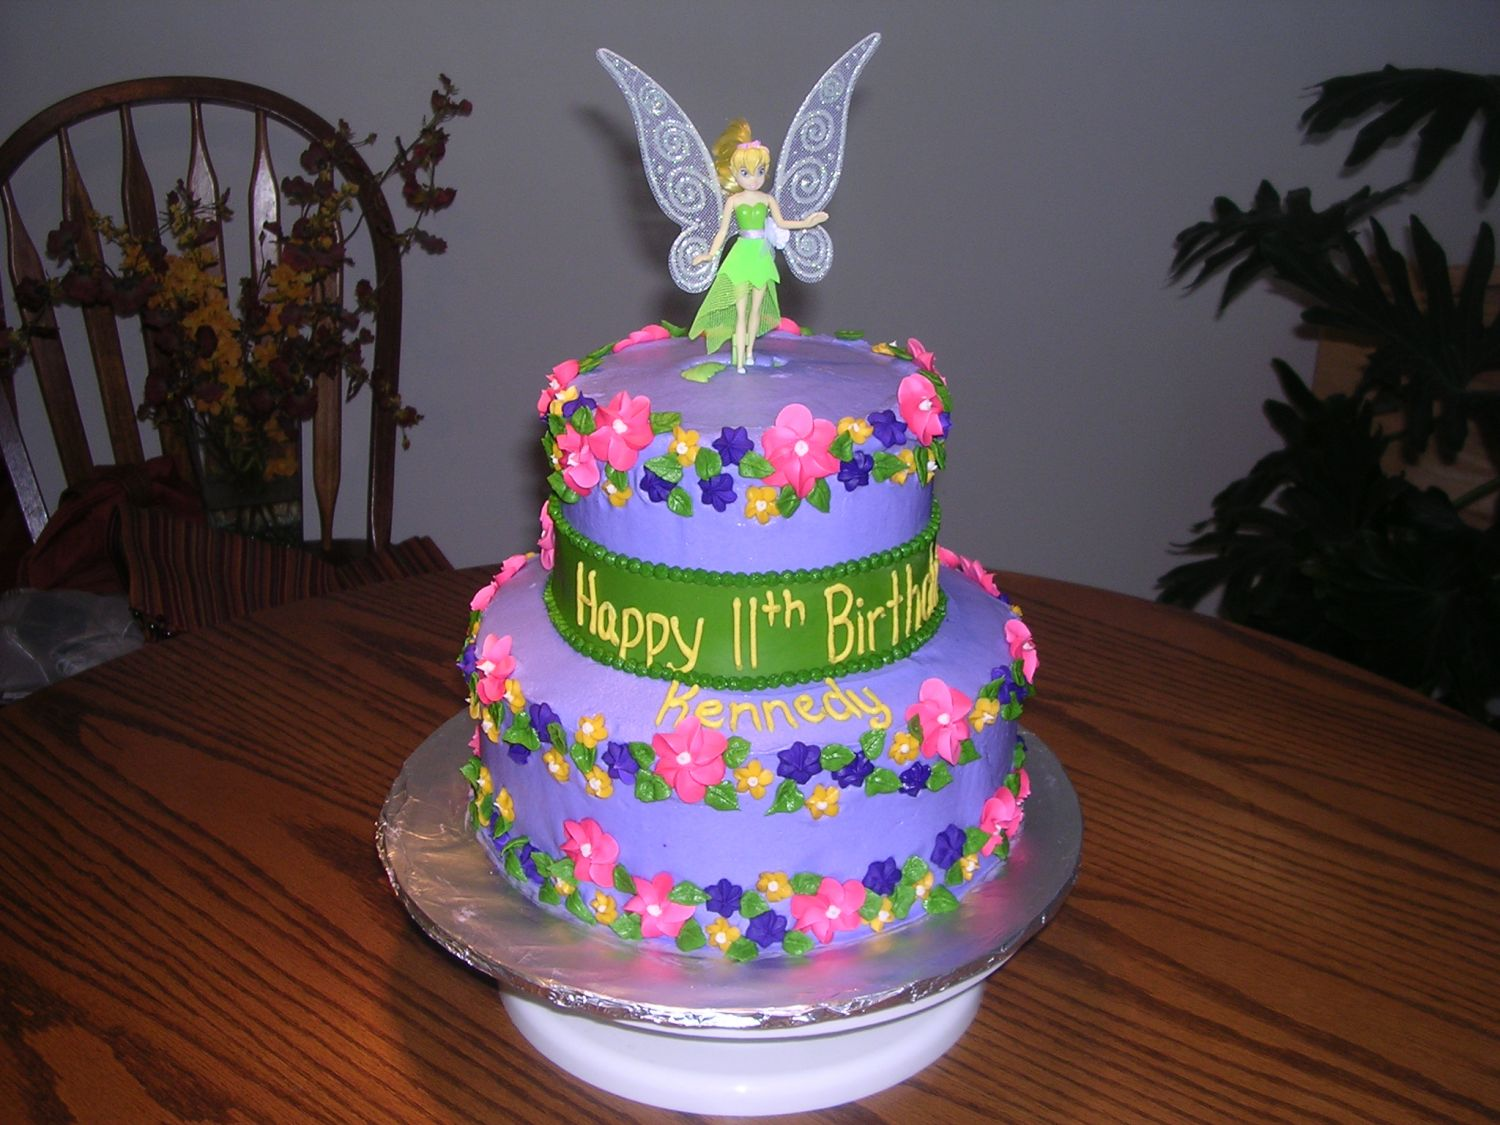 images of tinkerbell cakes photo of tinkerbell cakes - Birthday Cake Designs Ideas